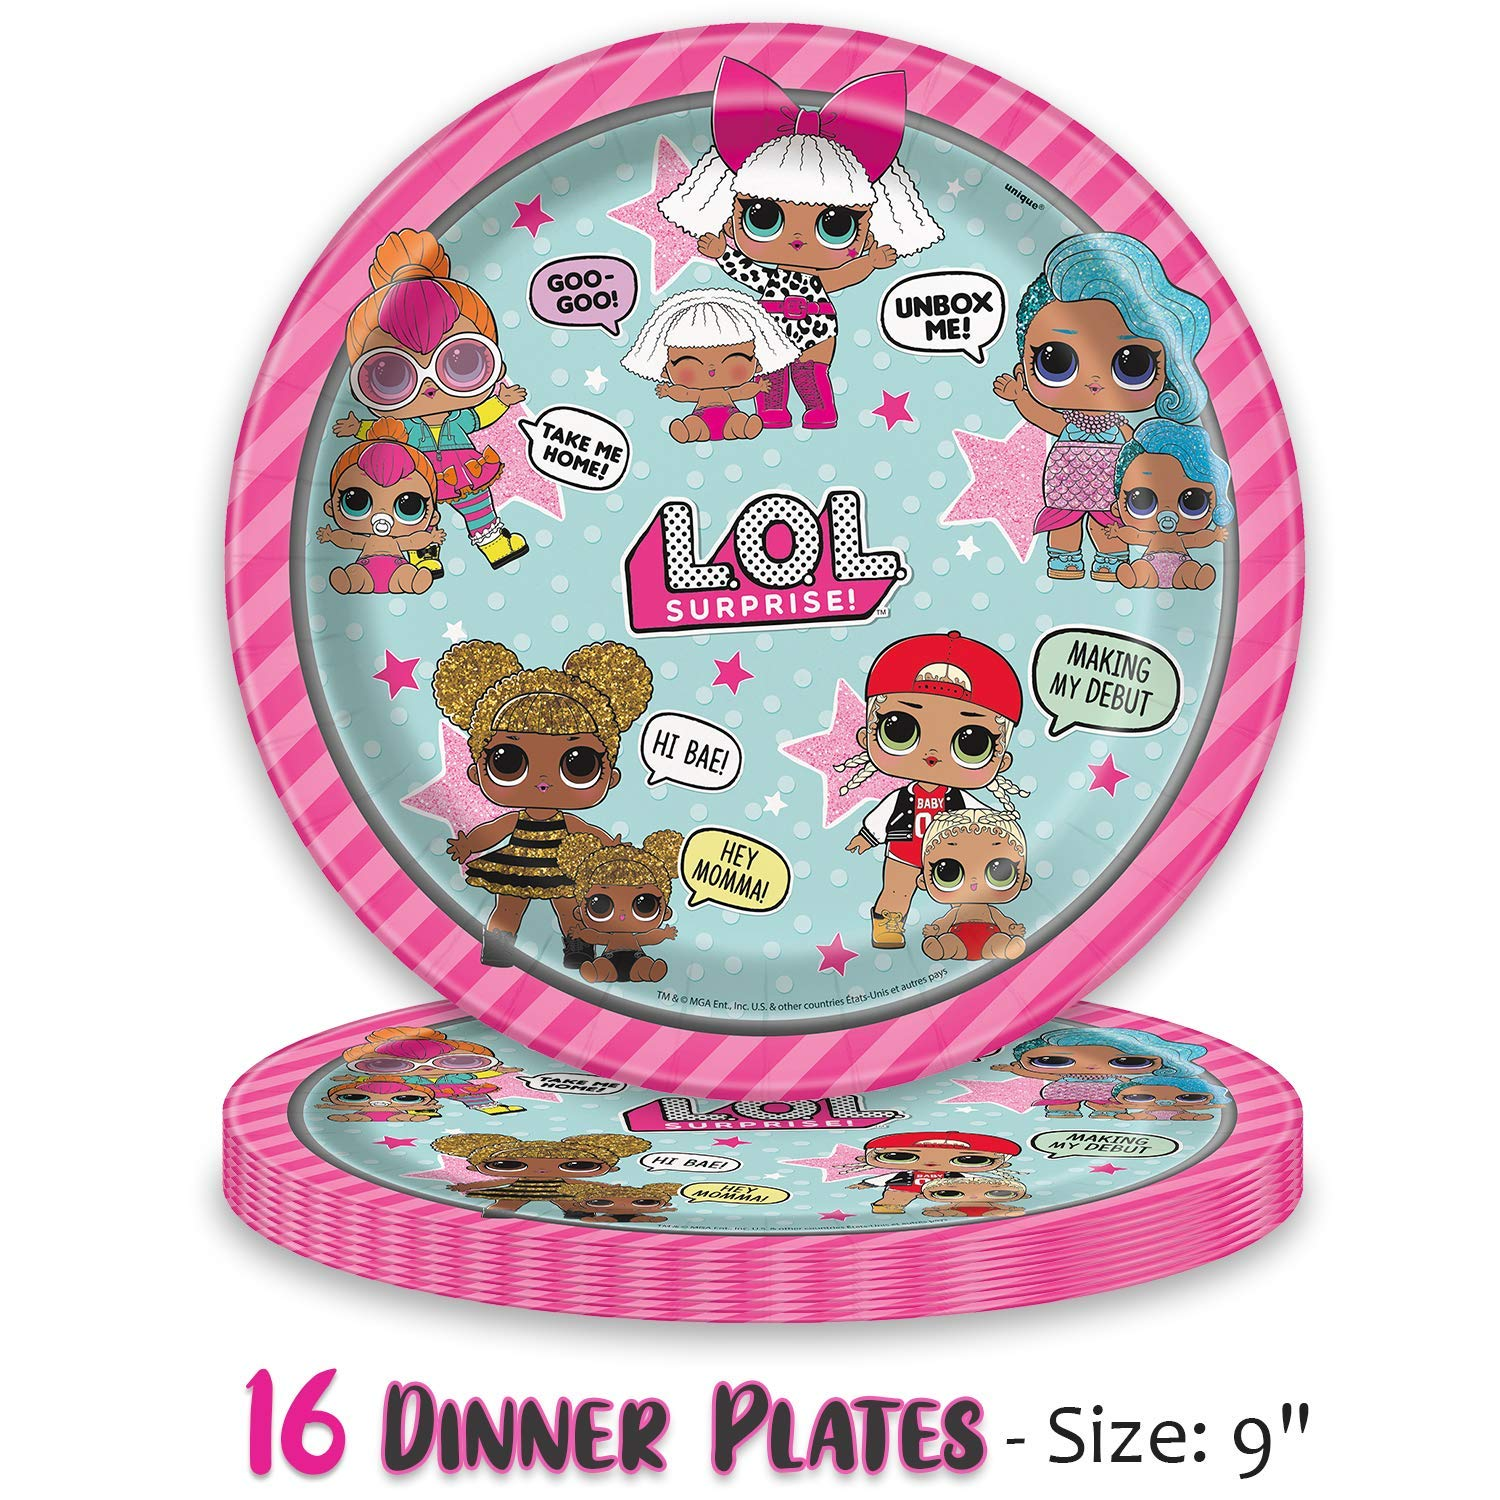 LOL Suprise Party Supplies, Serves 16 - Plates, Napkins, Tablecloth, Cups, Straws, Balloons, Tattoos, Birthday Hats - Full Tableware, Decorations, Favors for L.O.L Collectors by HeroFiber (Image #1)